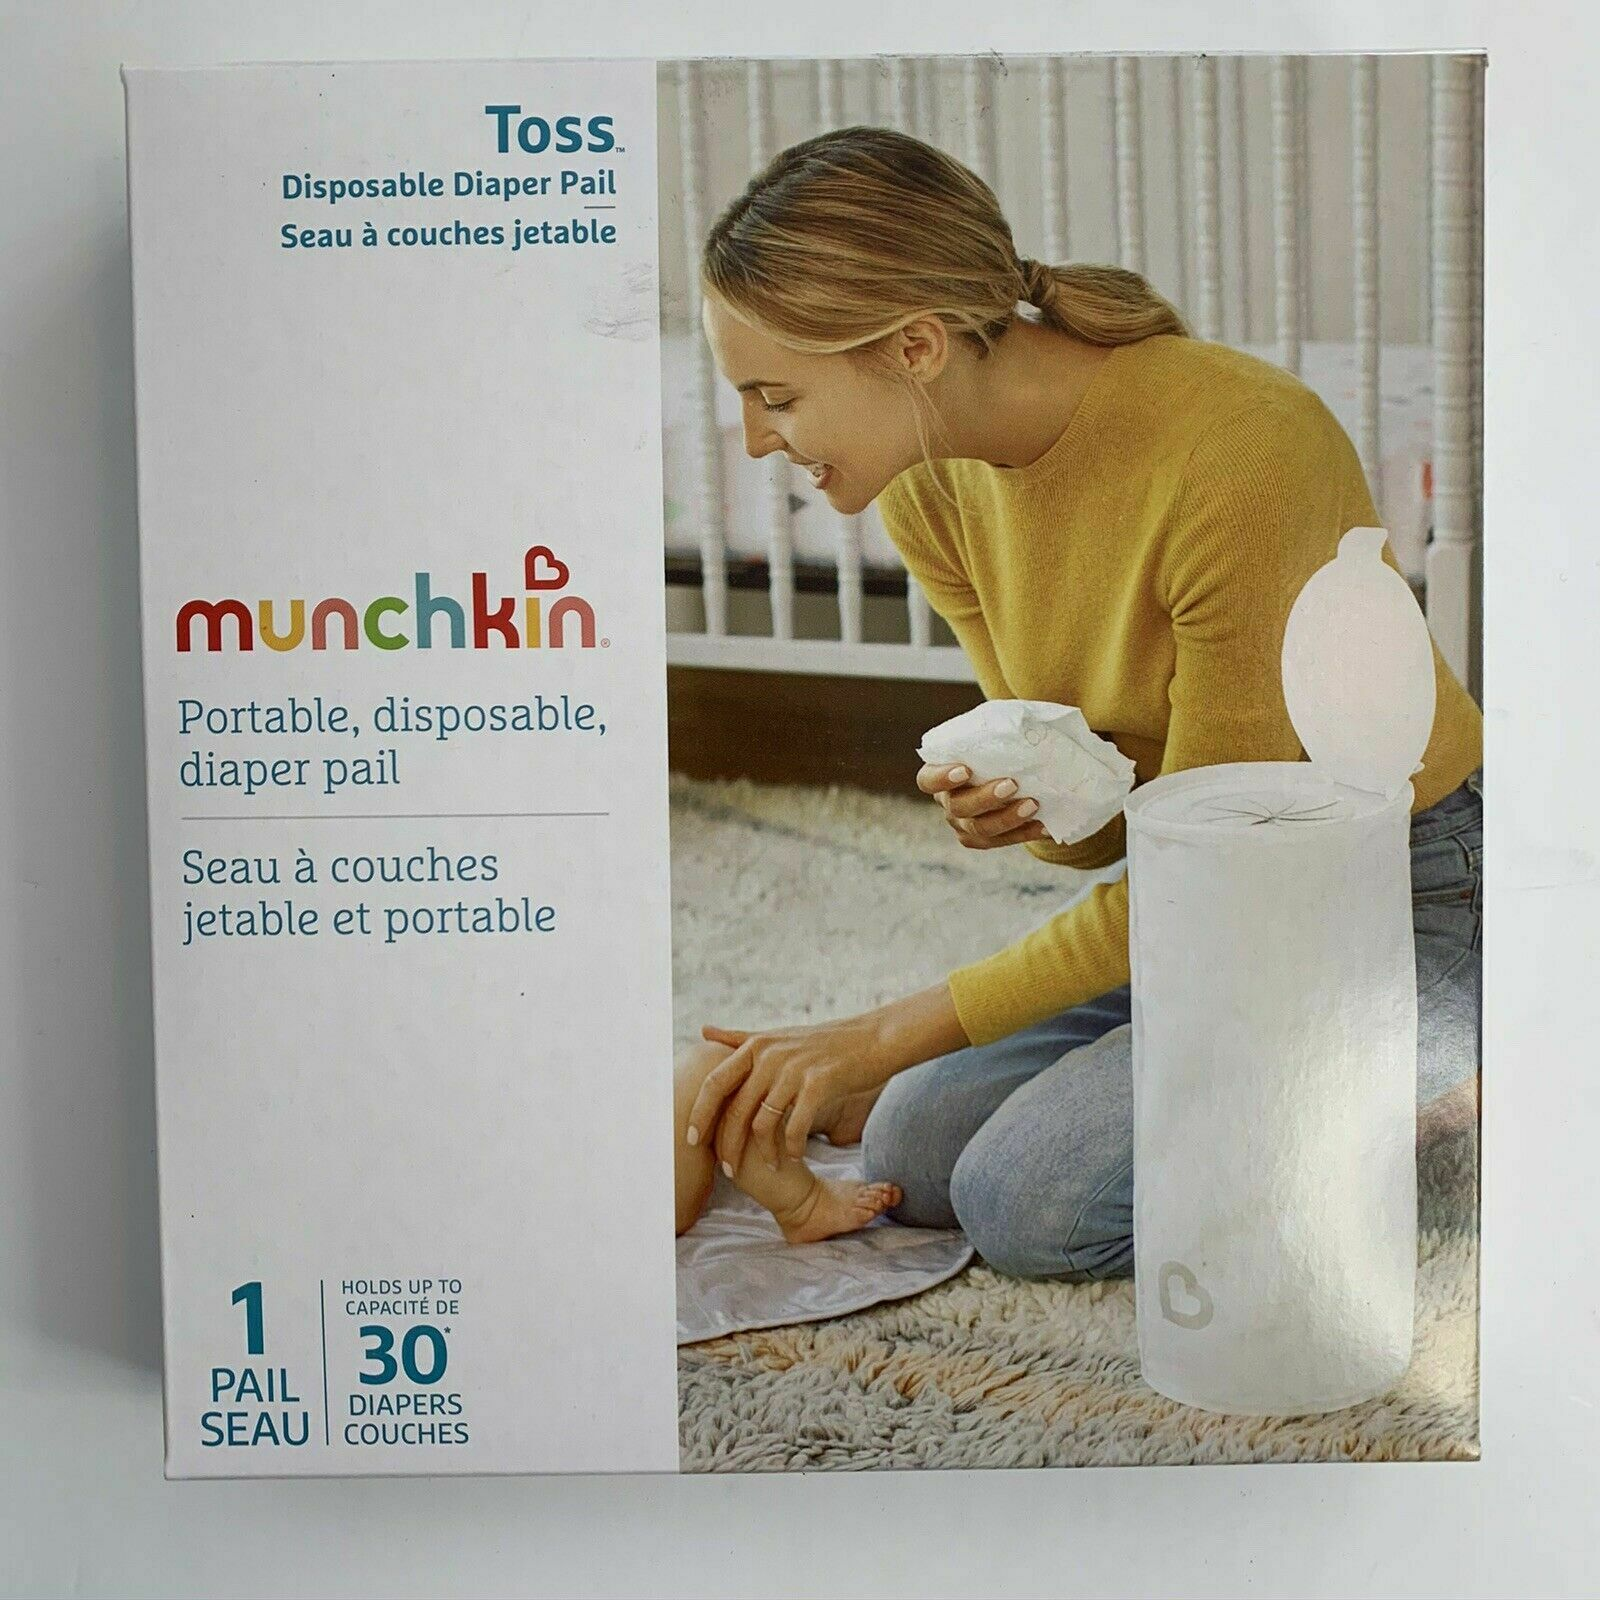 Munchkin Portable, Disposable Diaper Pail New In Box - 1 Pail Holds 30 Diapers - $7.95